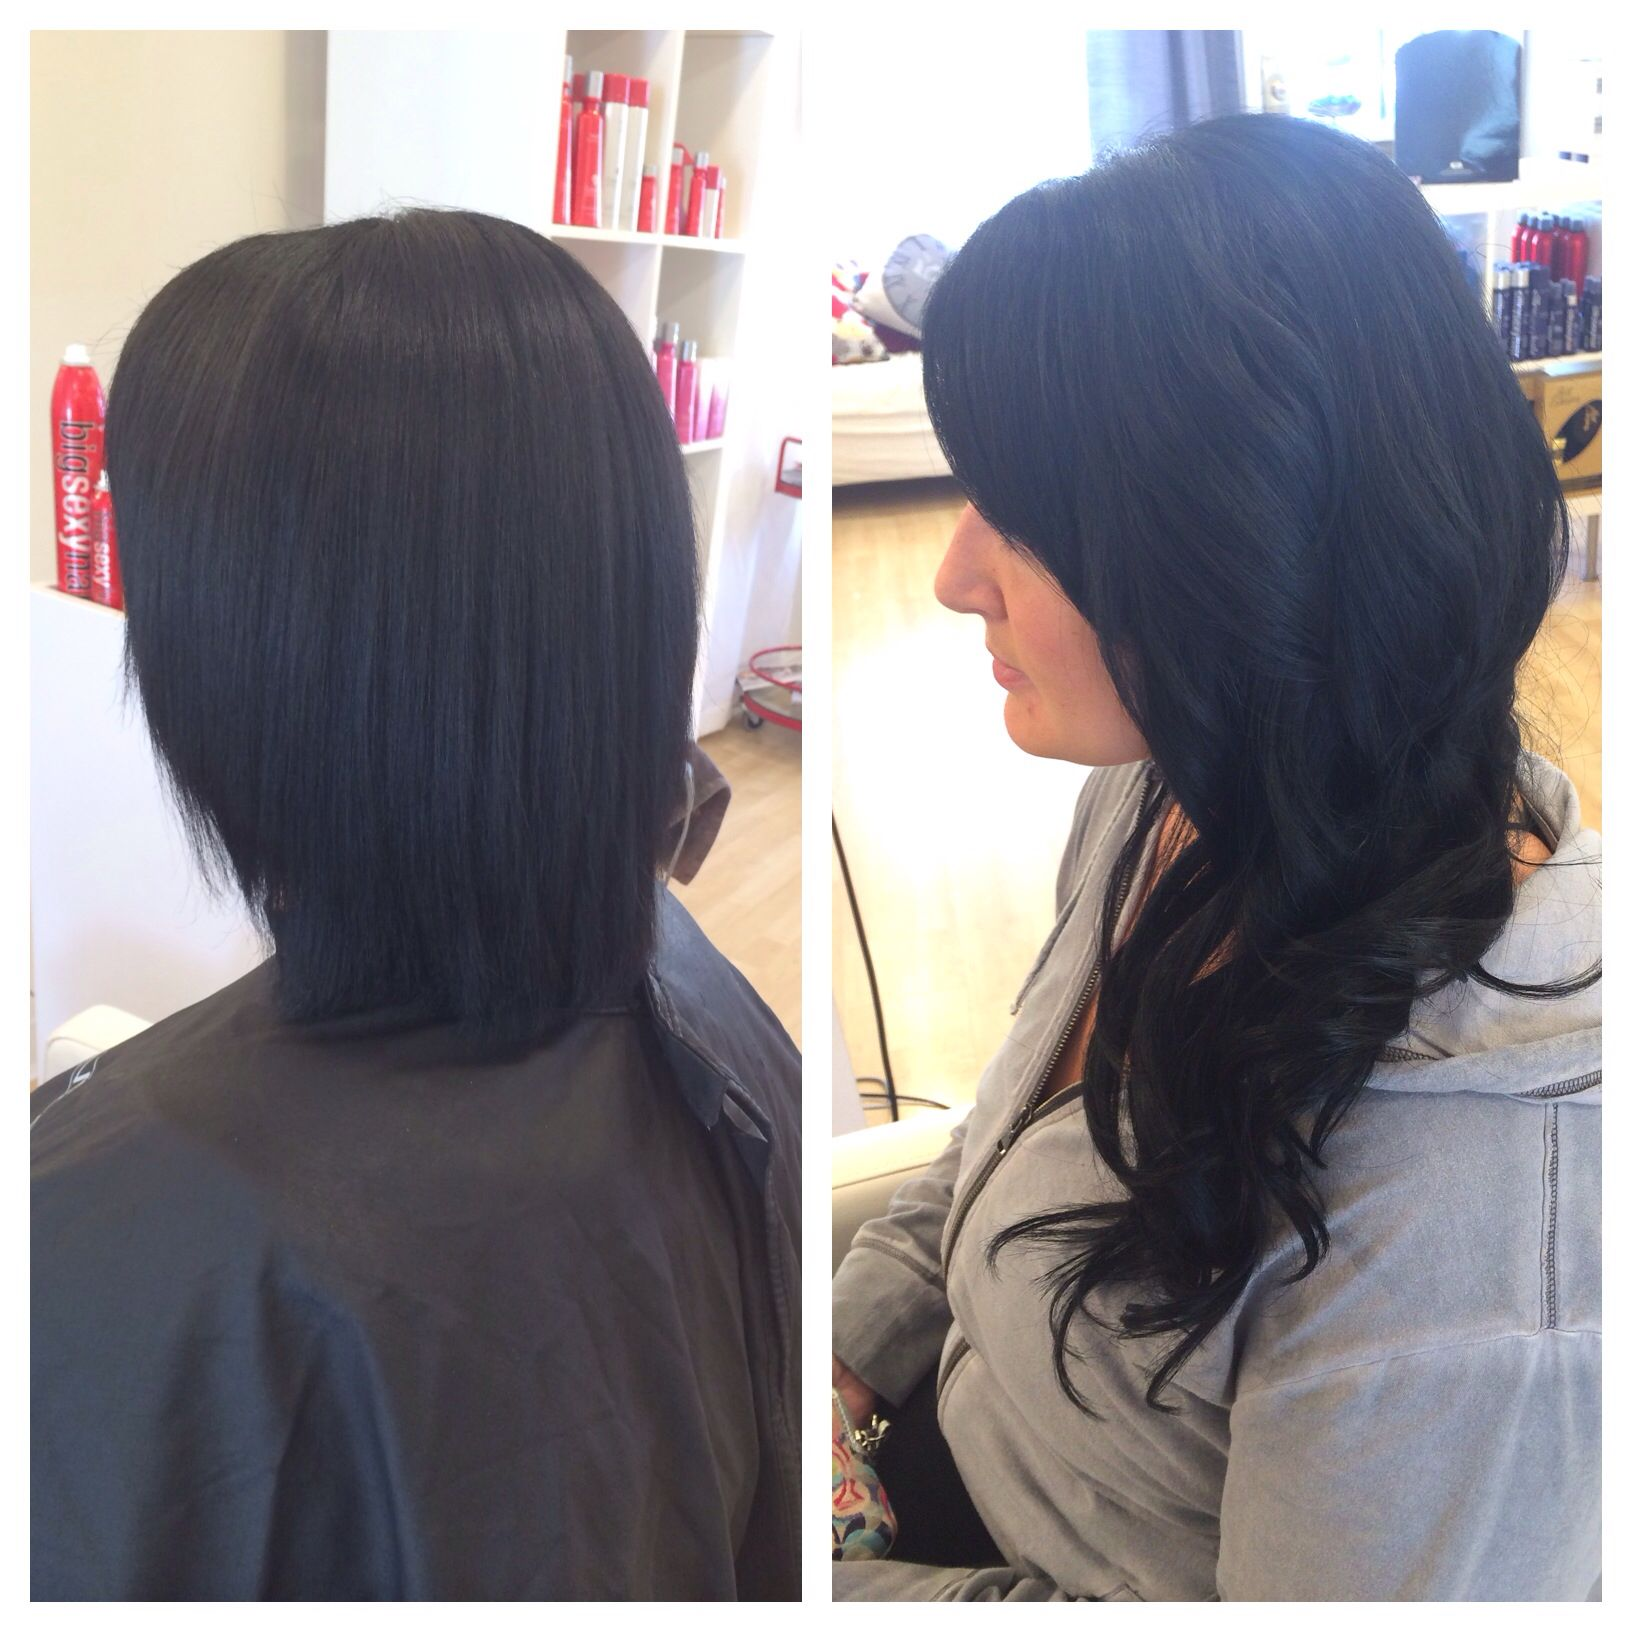 Short hair to long hair using babe tape in hair extensions by short hair to long hair using babe tape in hair extensions by ashley from melanie knapp pmusecretfo Image collections